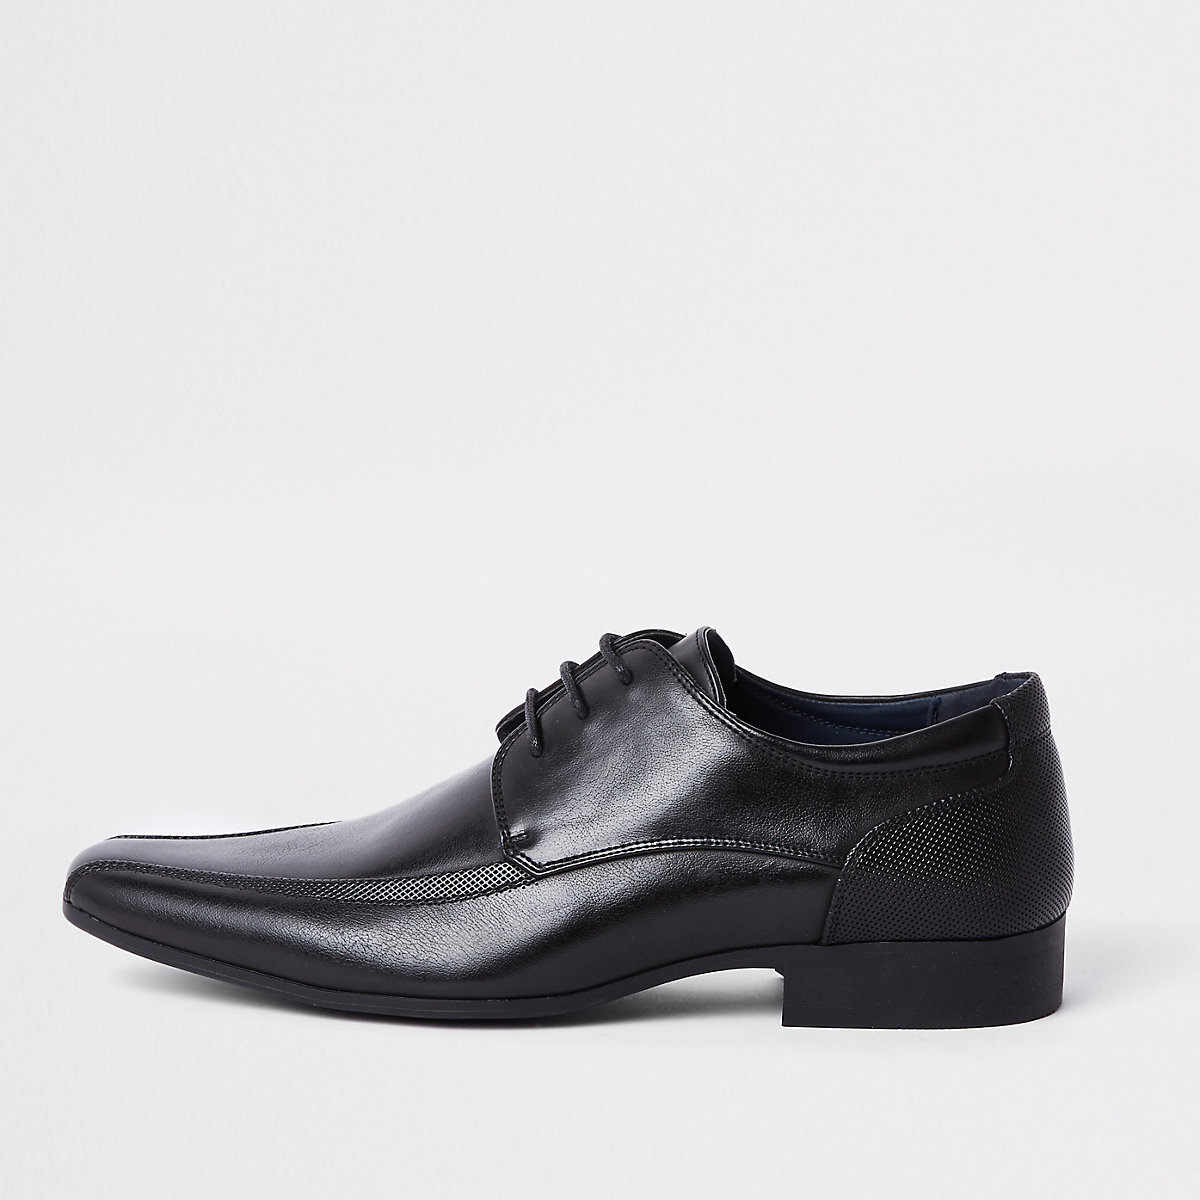 Black pointed lace-up shoes